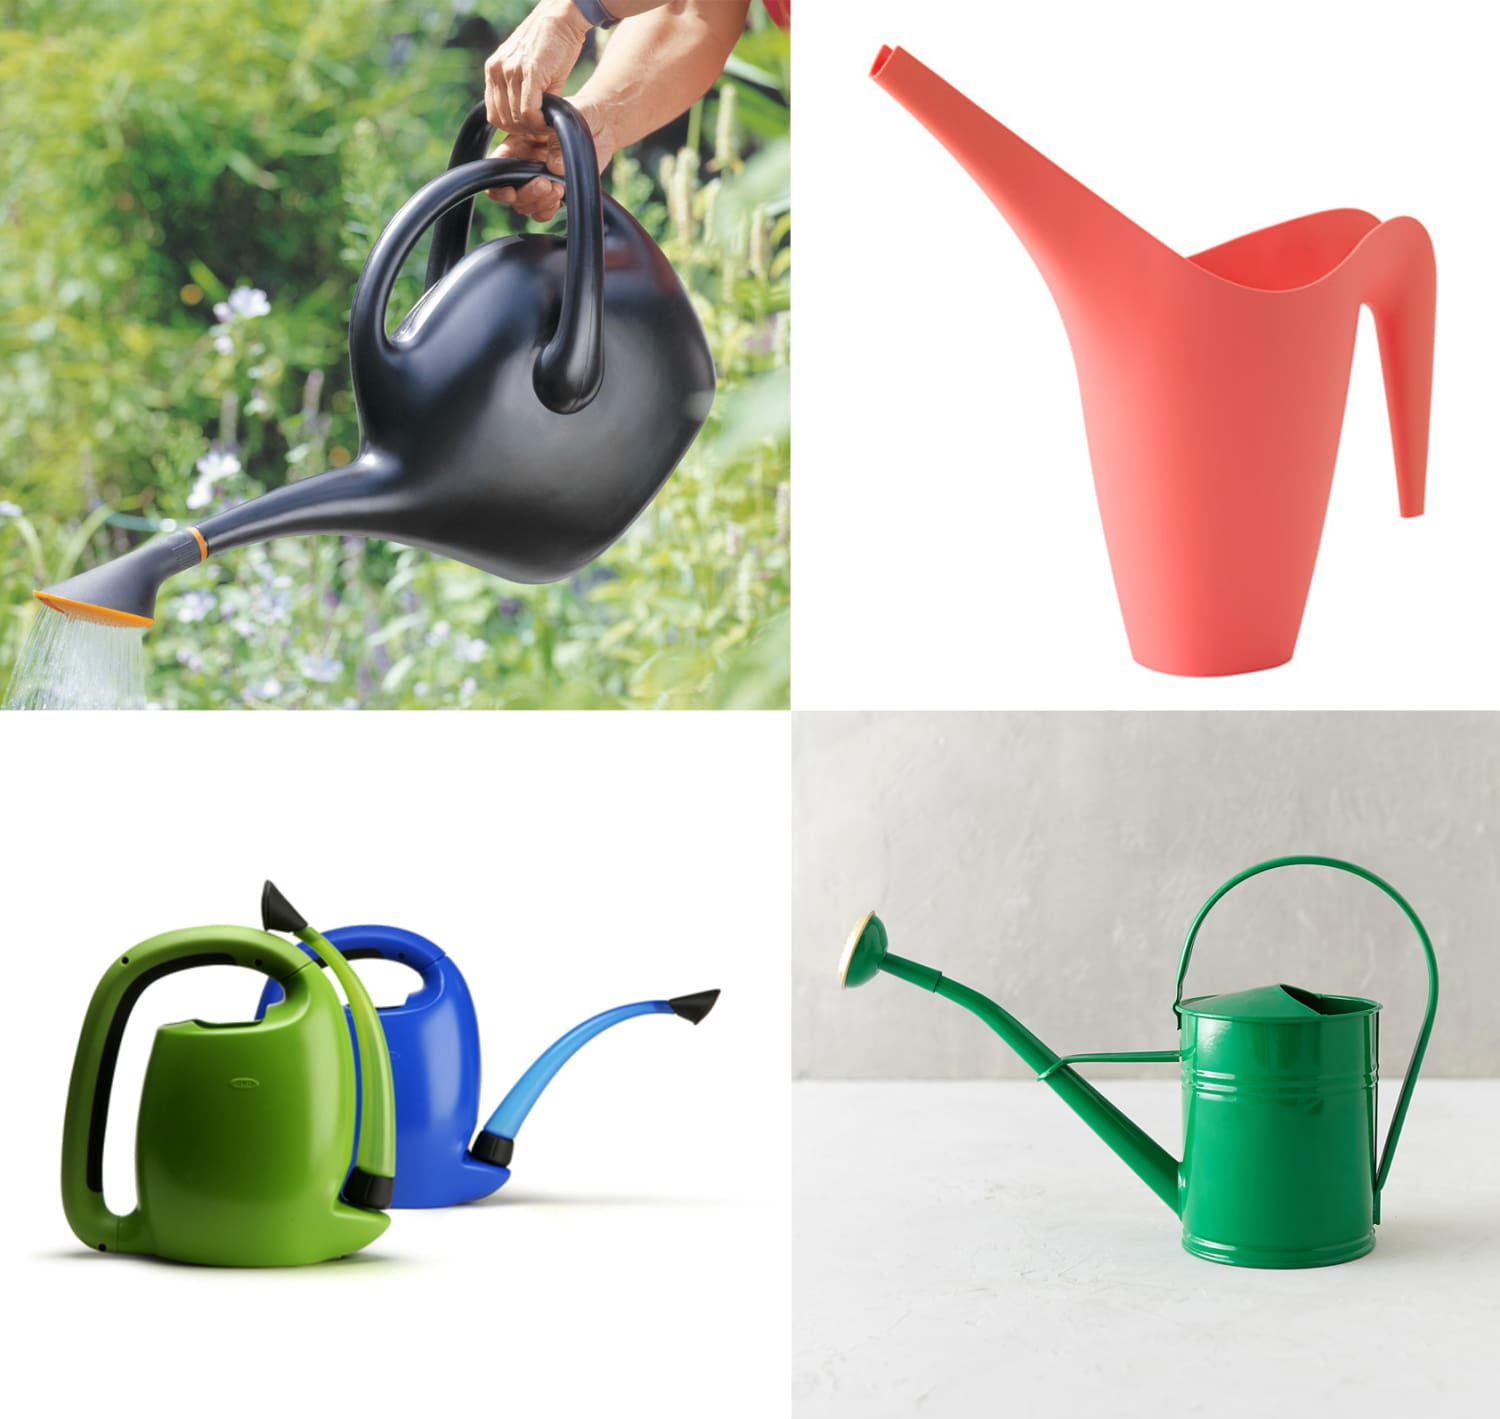 Best Watering Cans 2016: OXO, Haws, Fiskars & 8 More